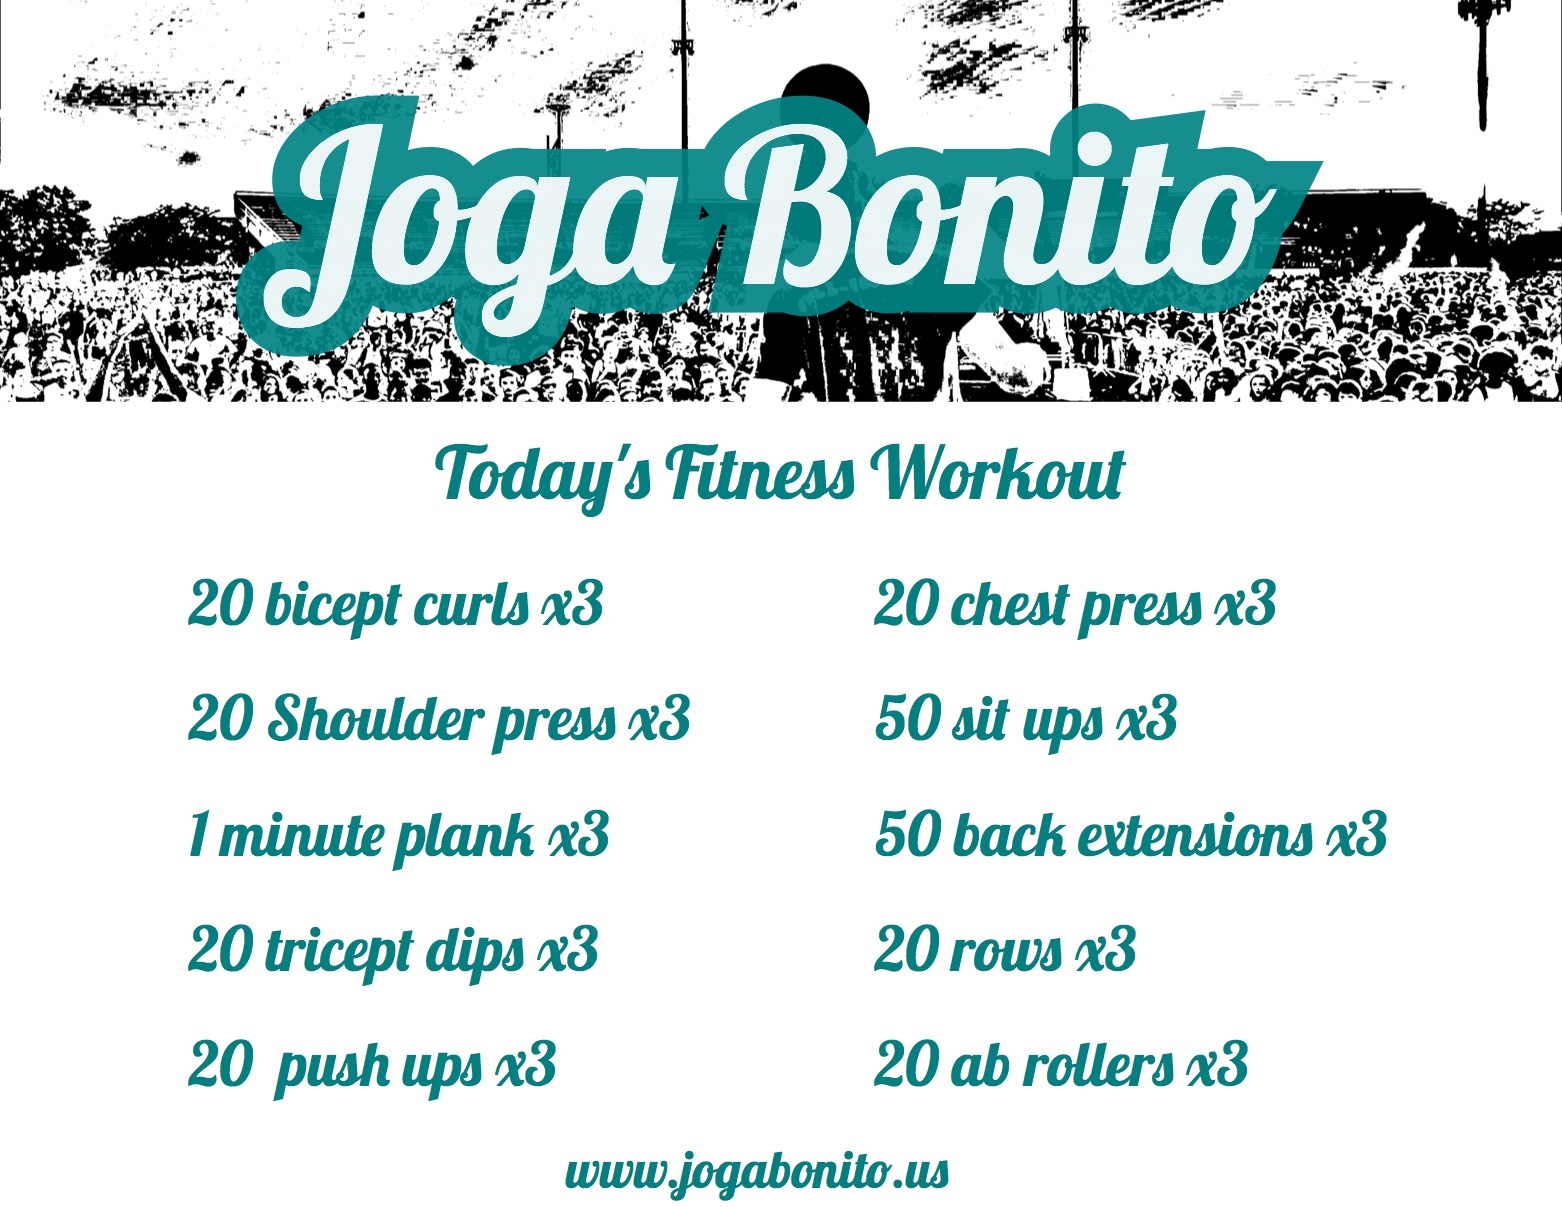 Today's Fitness Workout April 10, 2020